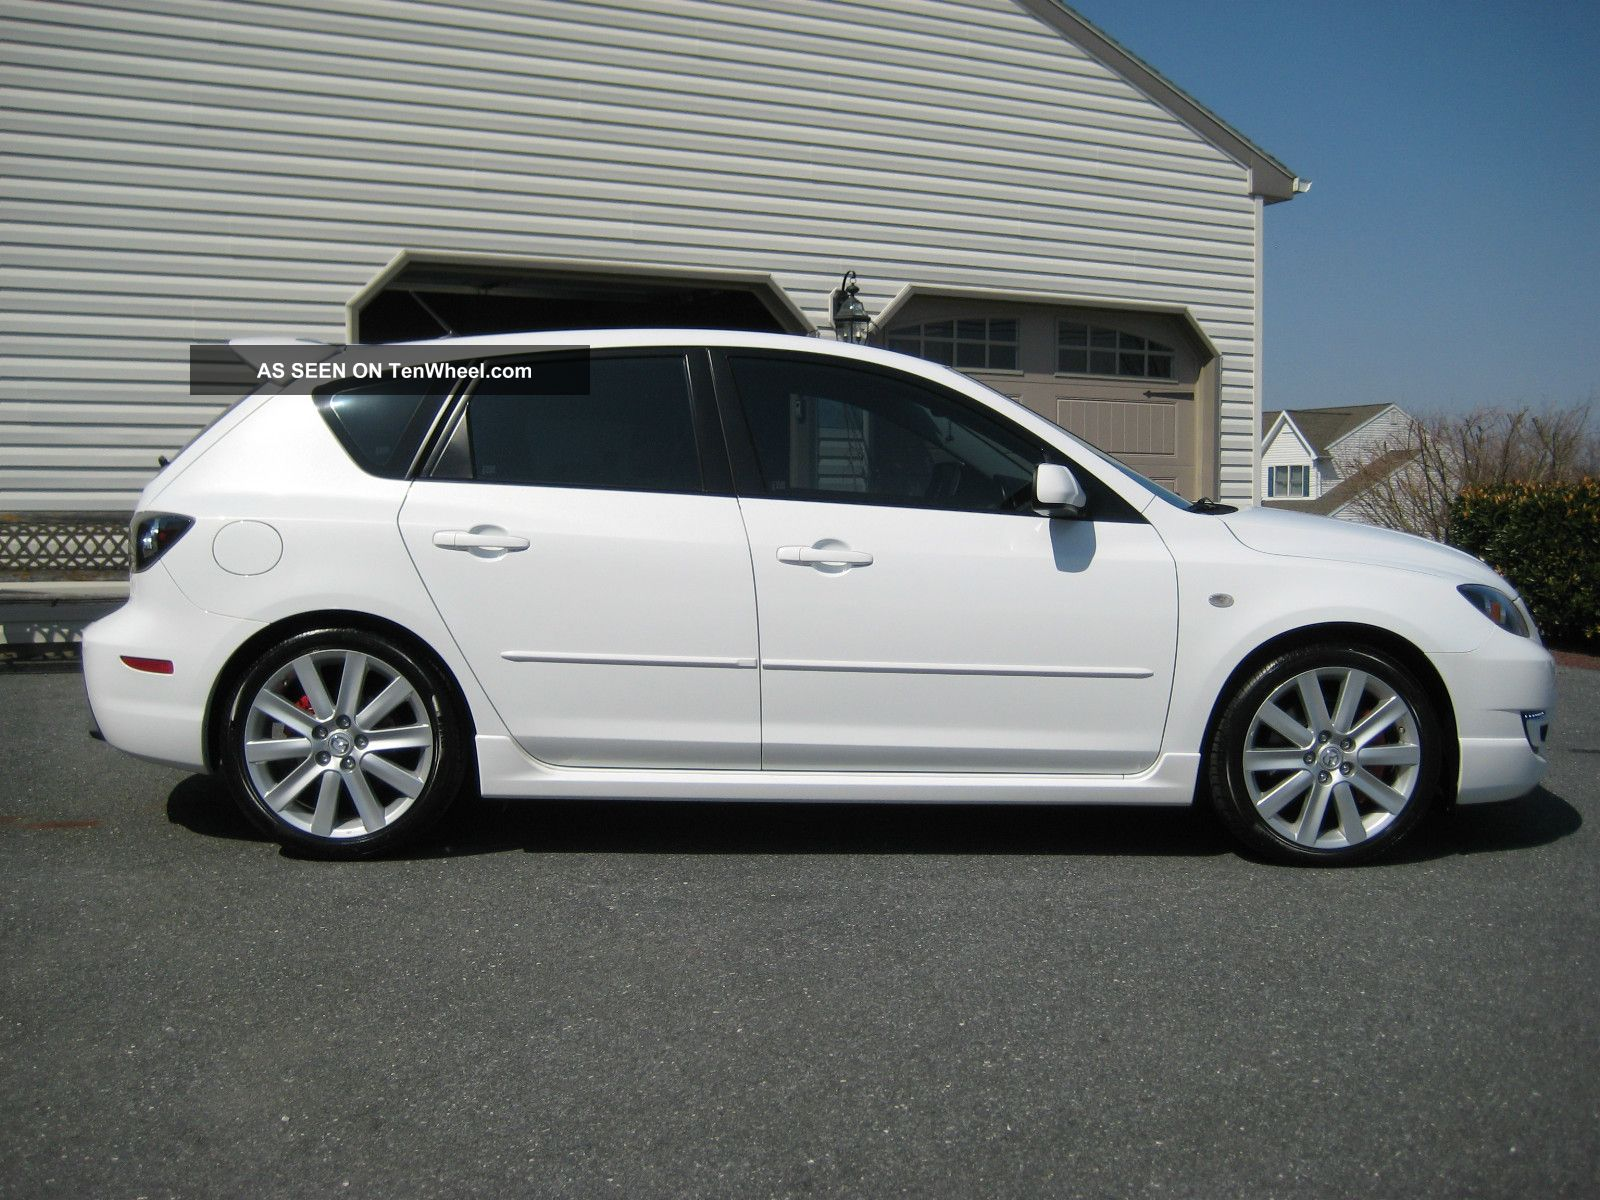 2008 mazda 3 mazdaspeed hatchback 4 door 2 3l. Black Bedroom Furniture Sets. Home Design Ideas